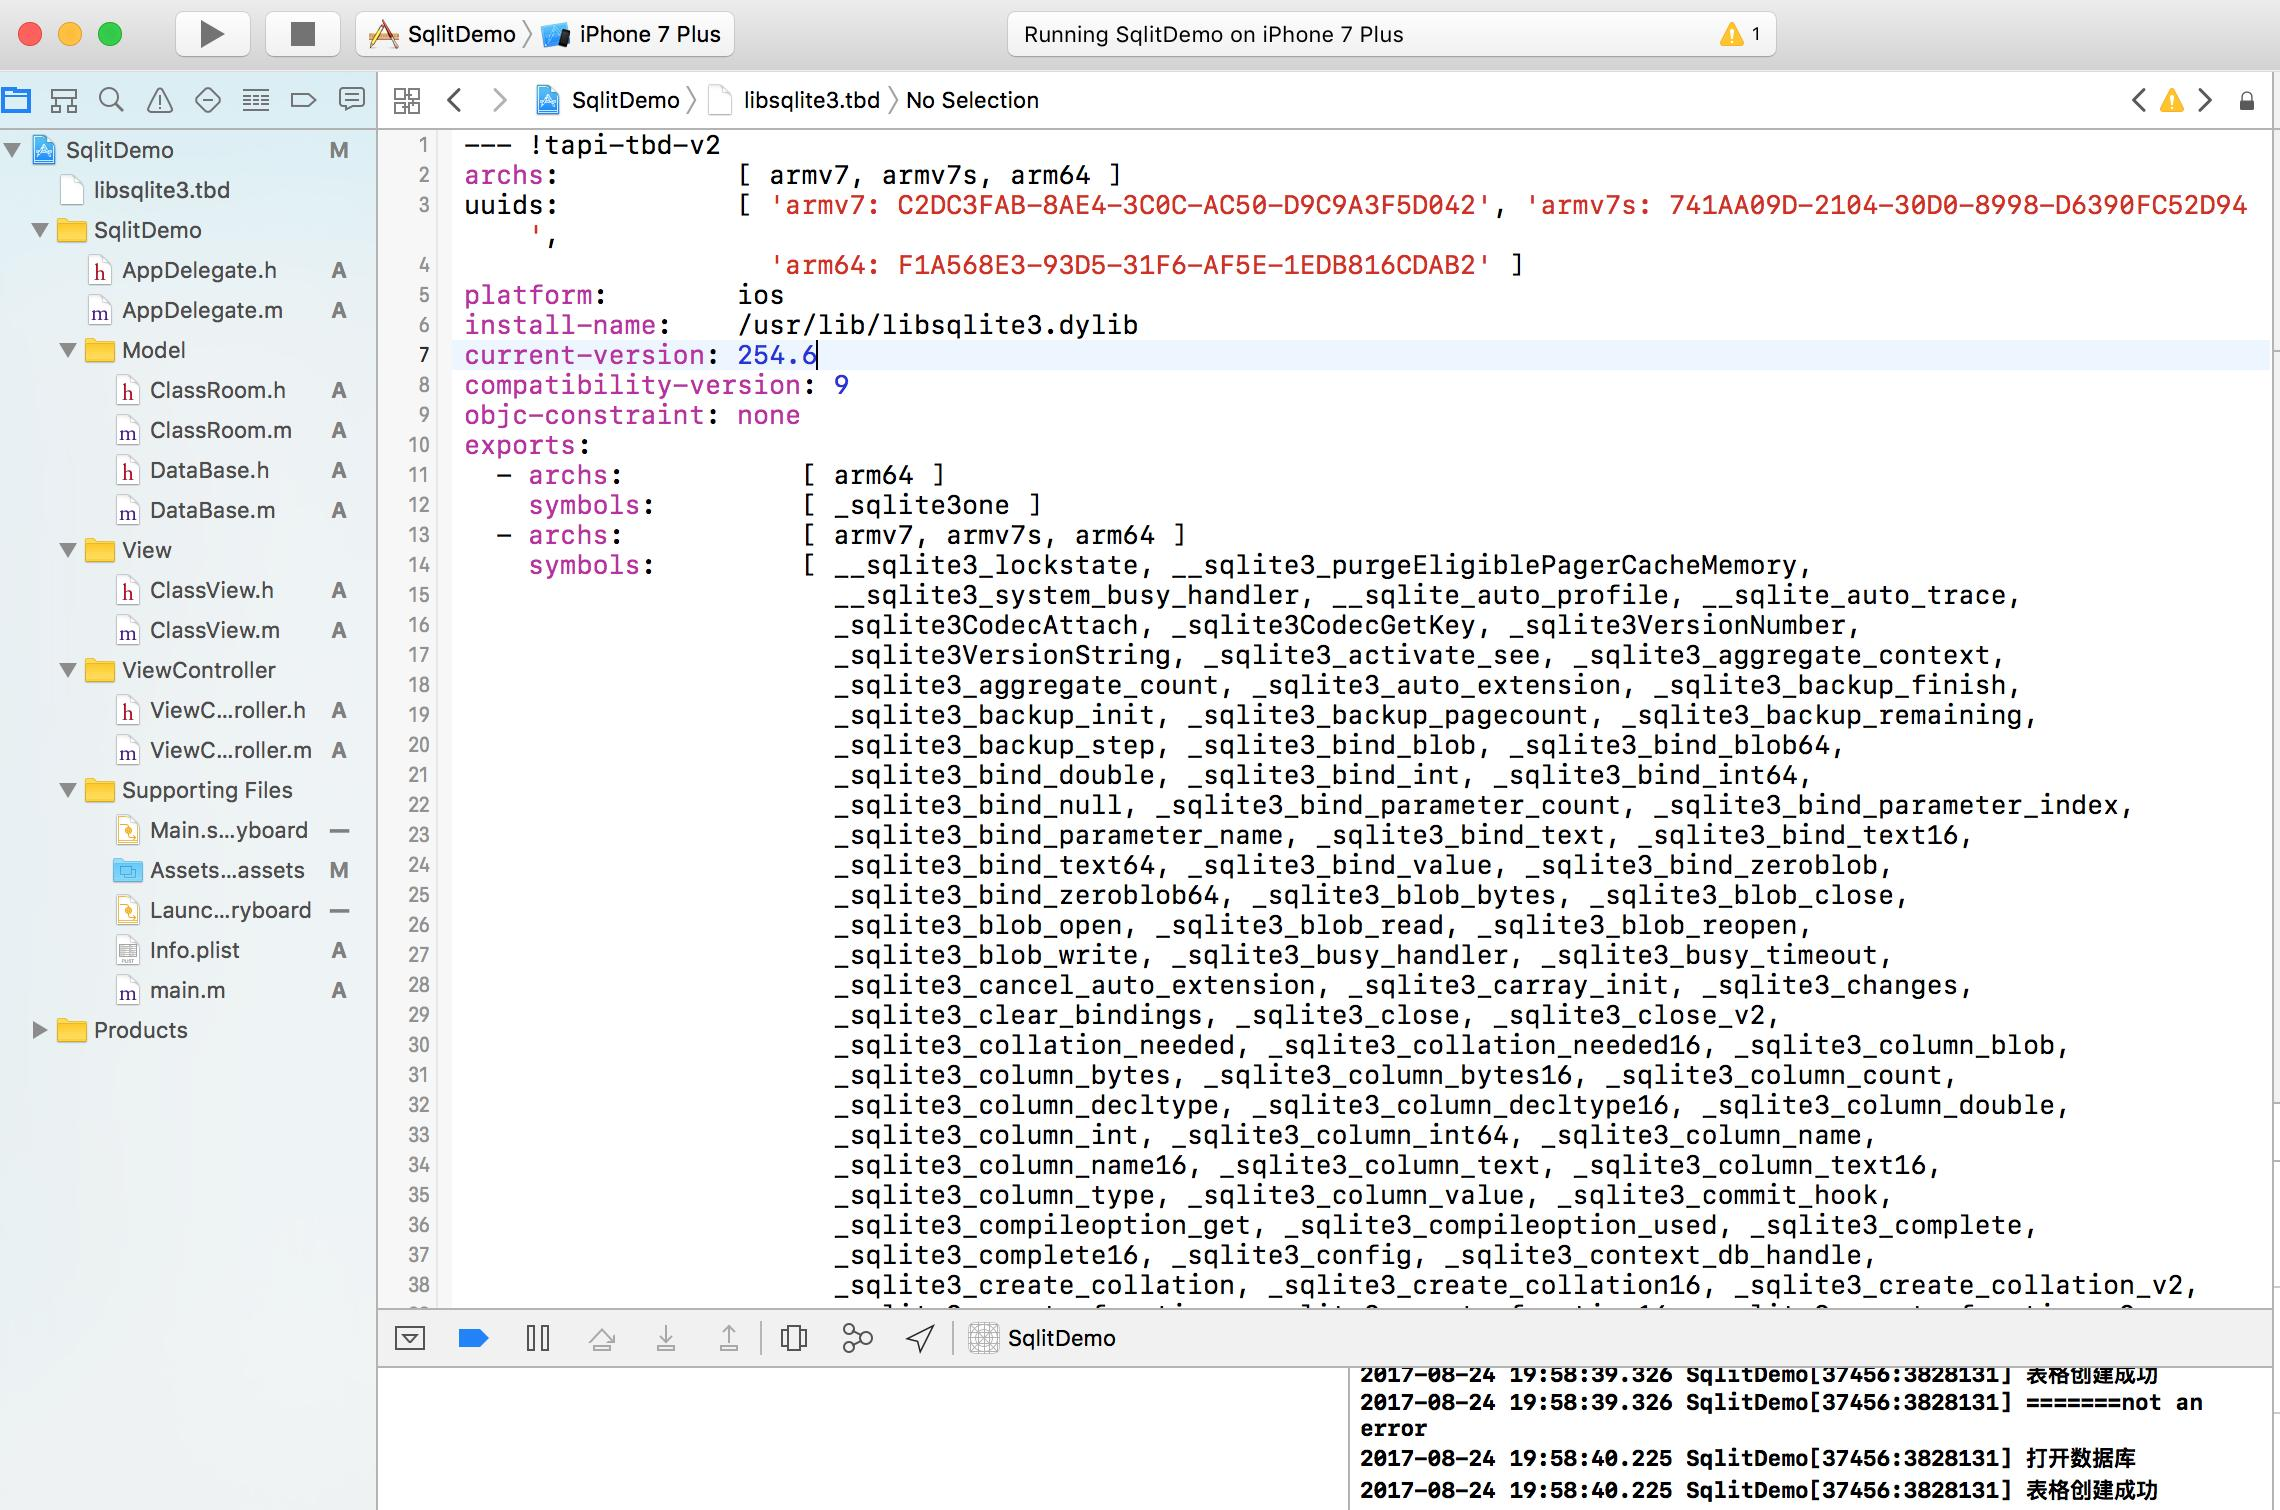 Super perfect annotation SqlitDemo additions and deletions